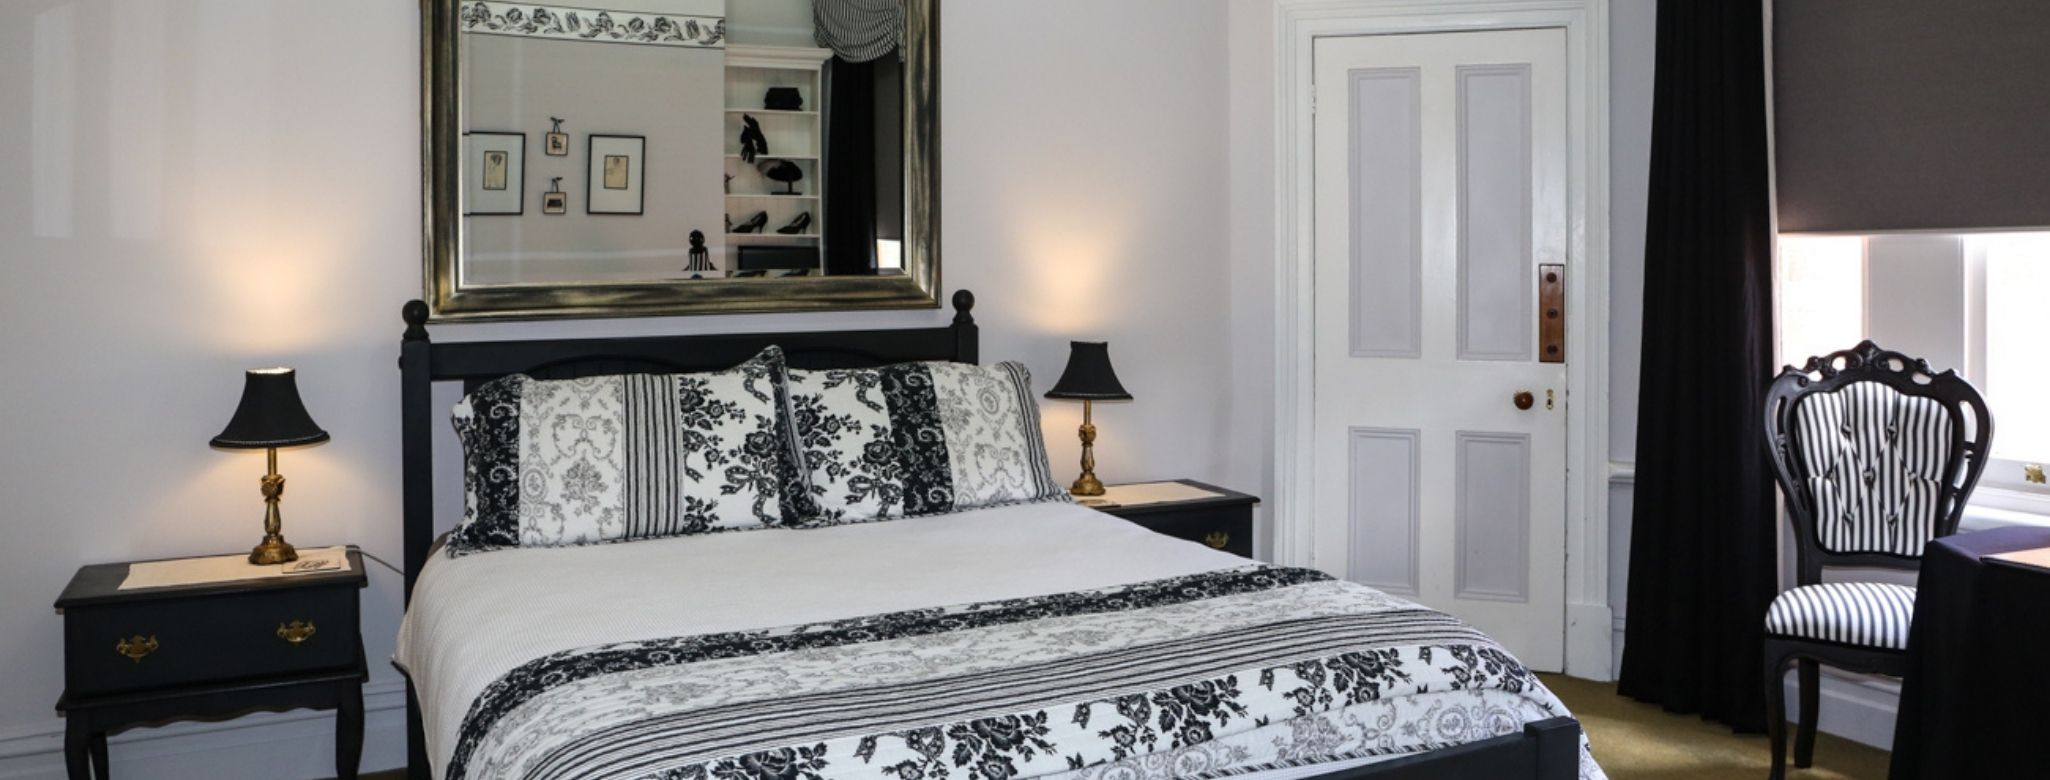 The Huxley Suite At Penghana Bed And Breakfast Accommodation In Queenstown, Tasmania Is Decorated In Stylish Black And White